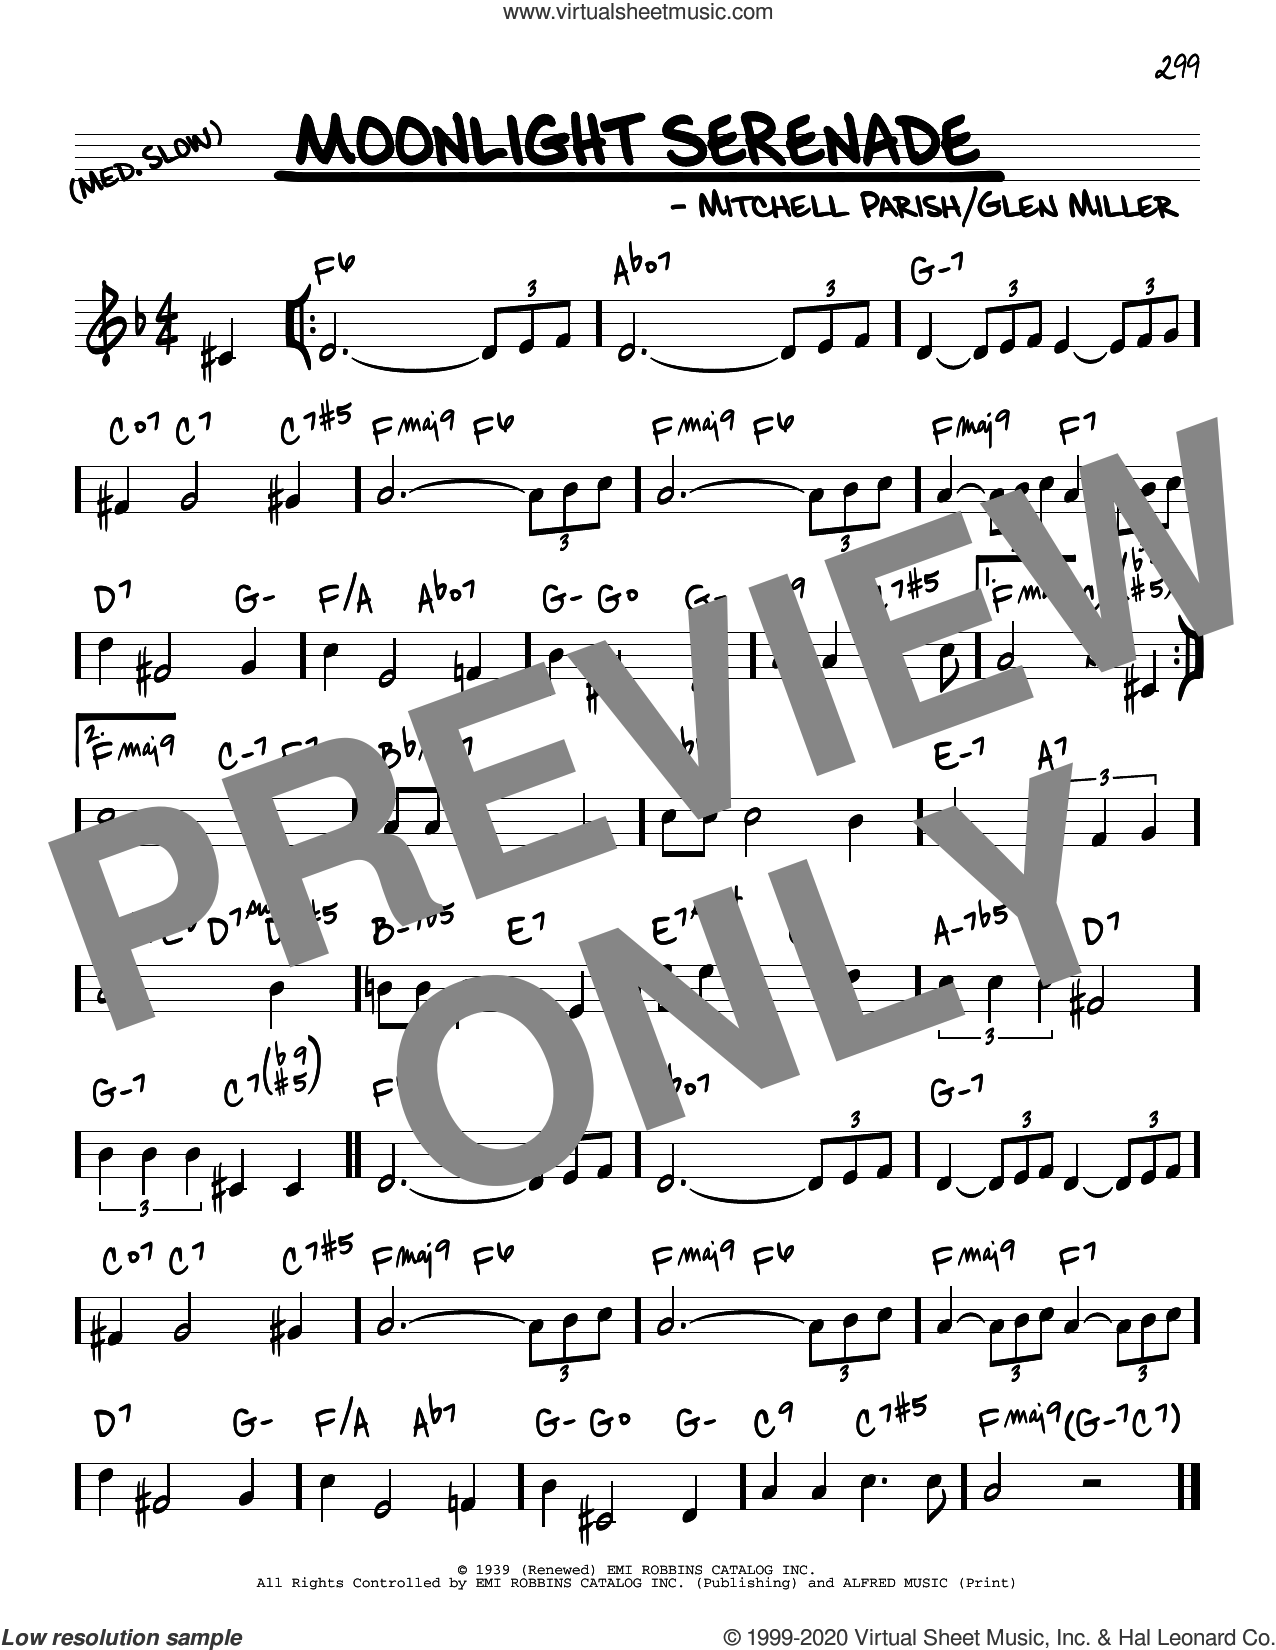 Moonlight Serenade sheet music for voice and other instruments (real book) by Mitchell Parish and Glenn Miller, intermediate skill level